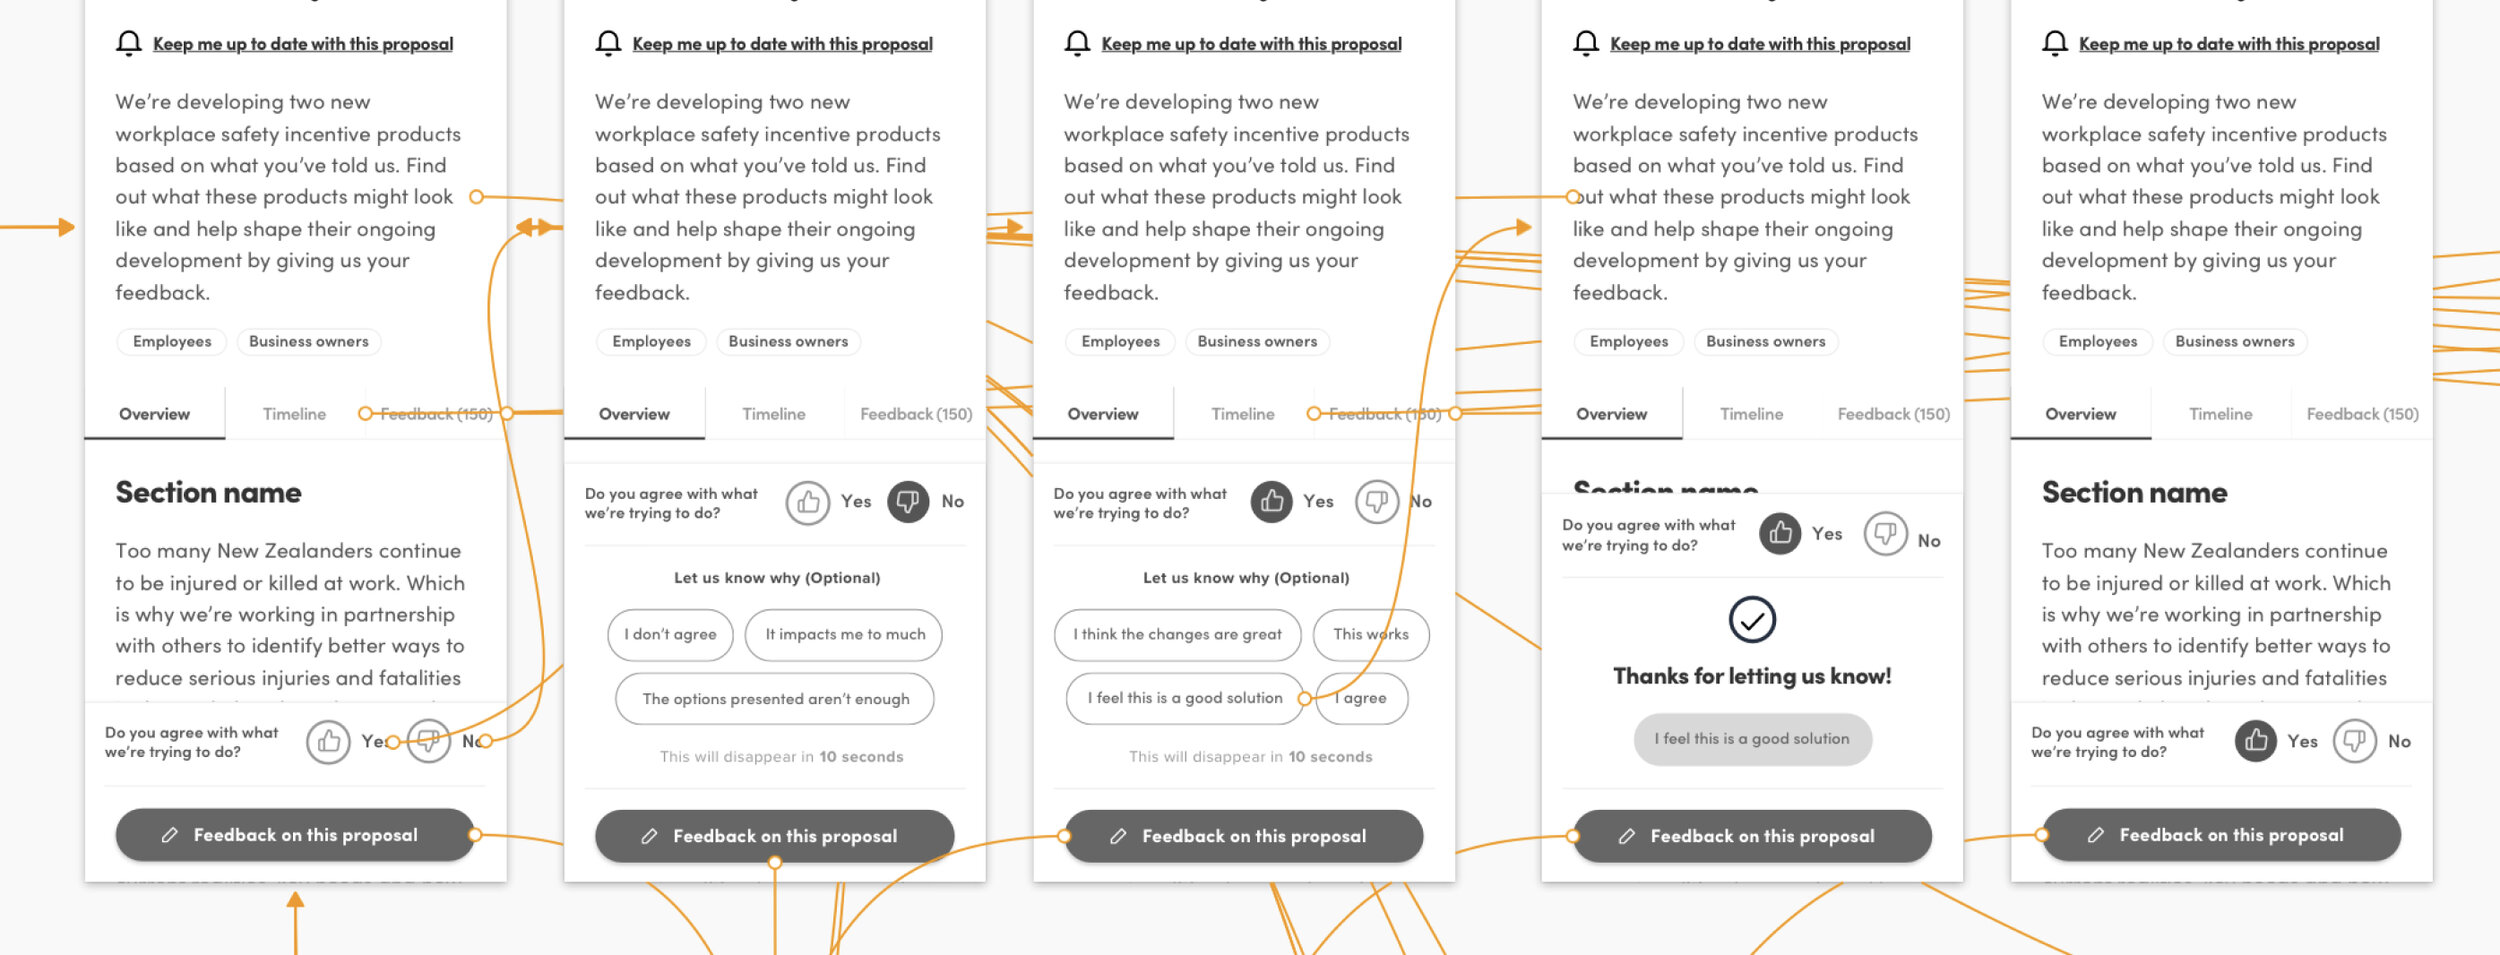 Initial user journey for the quick feedback option on mobile.